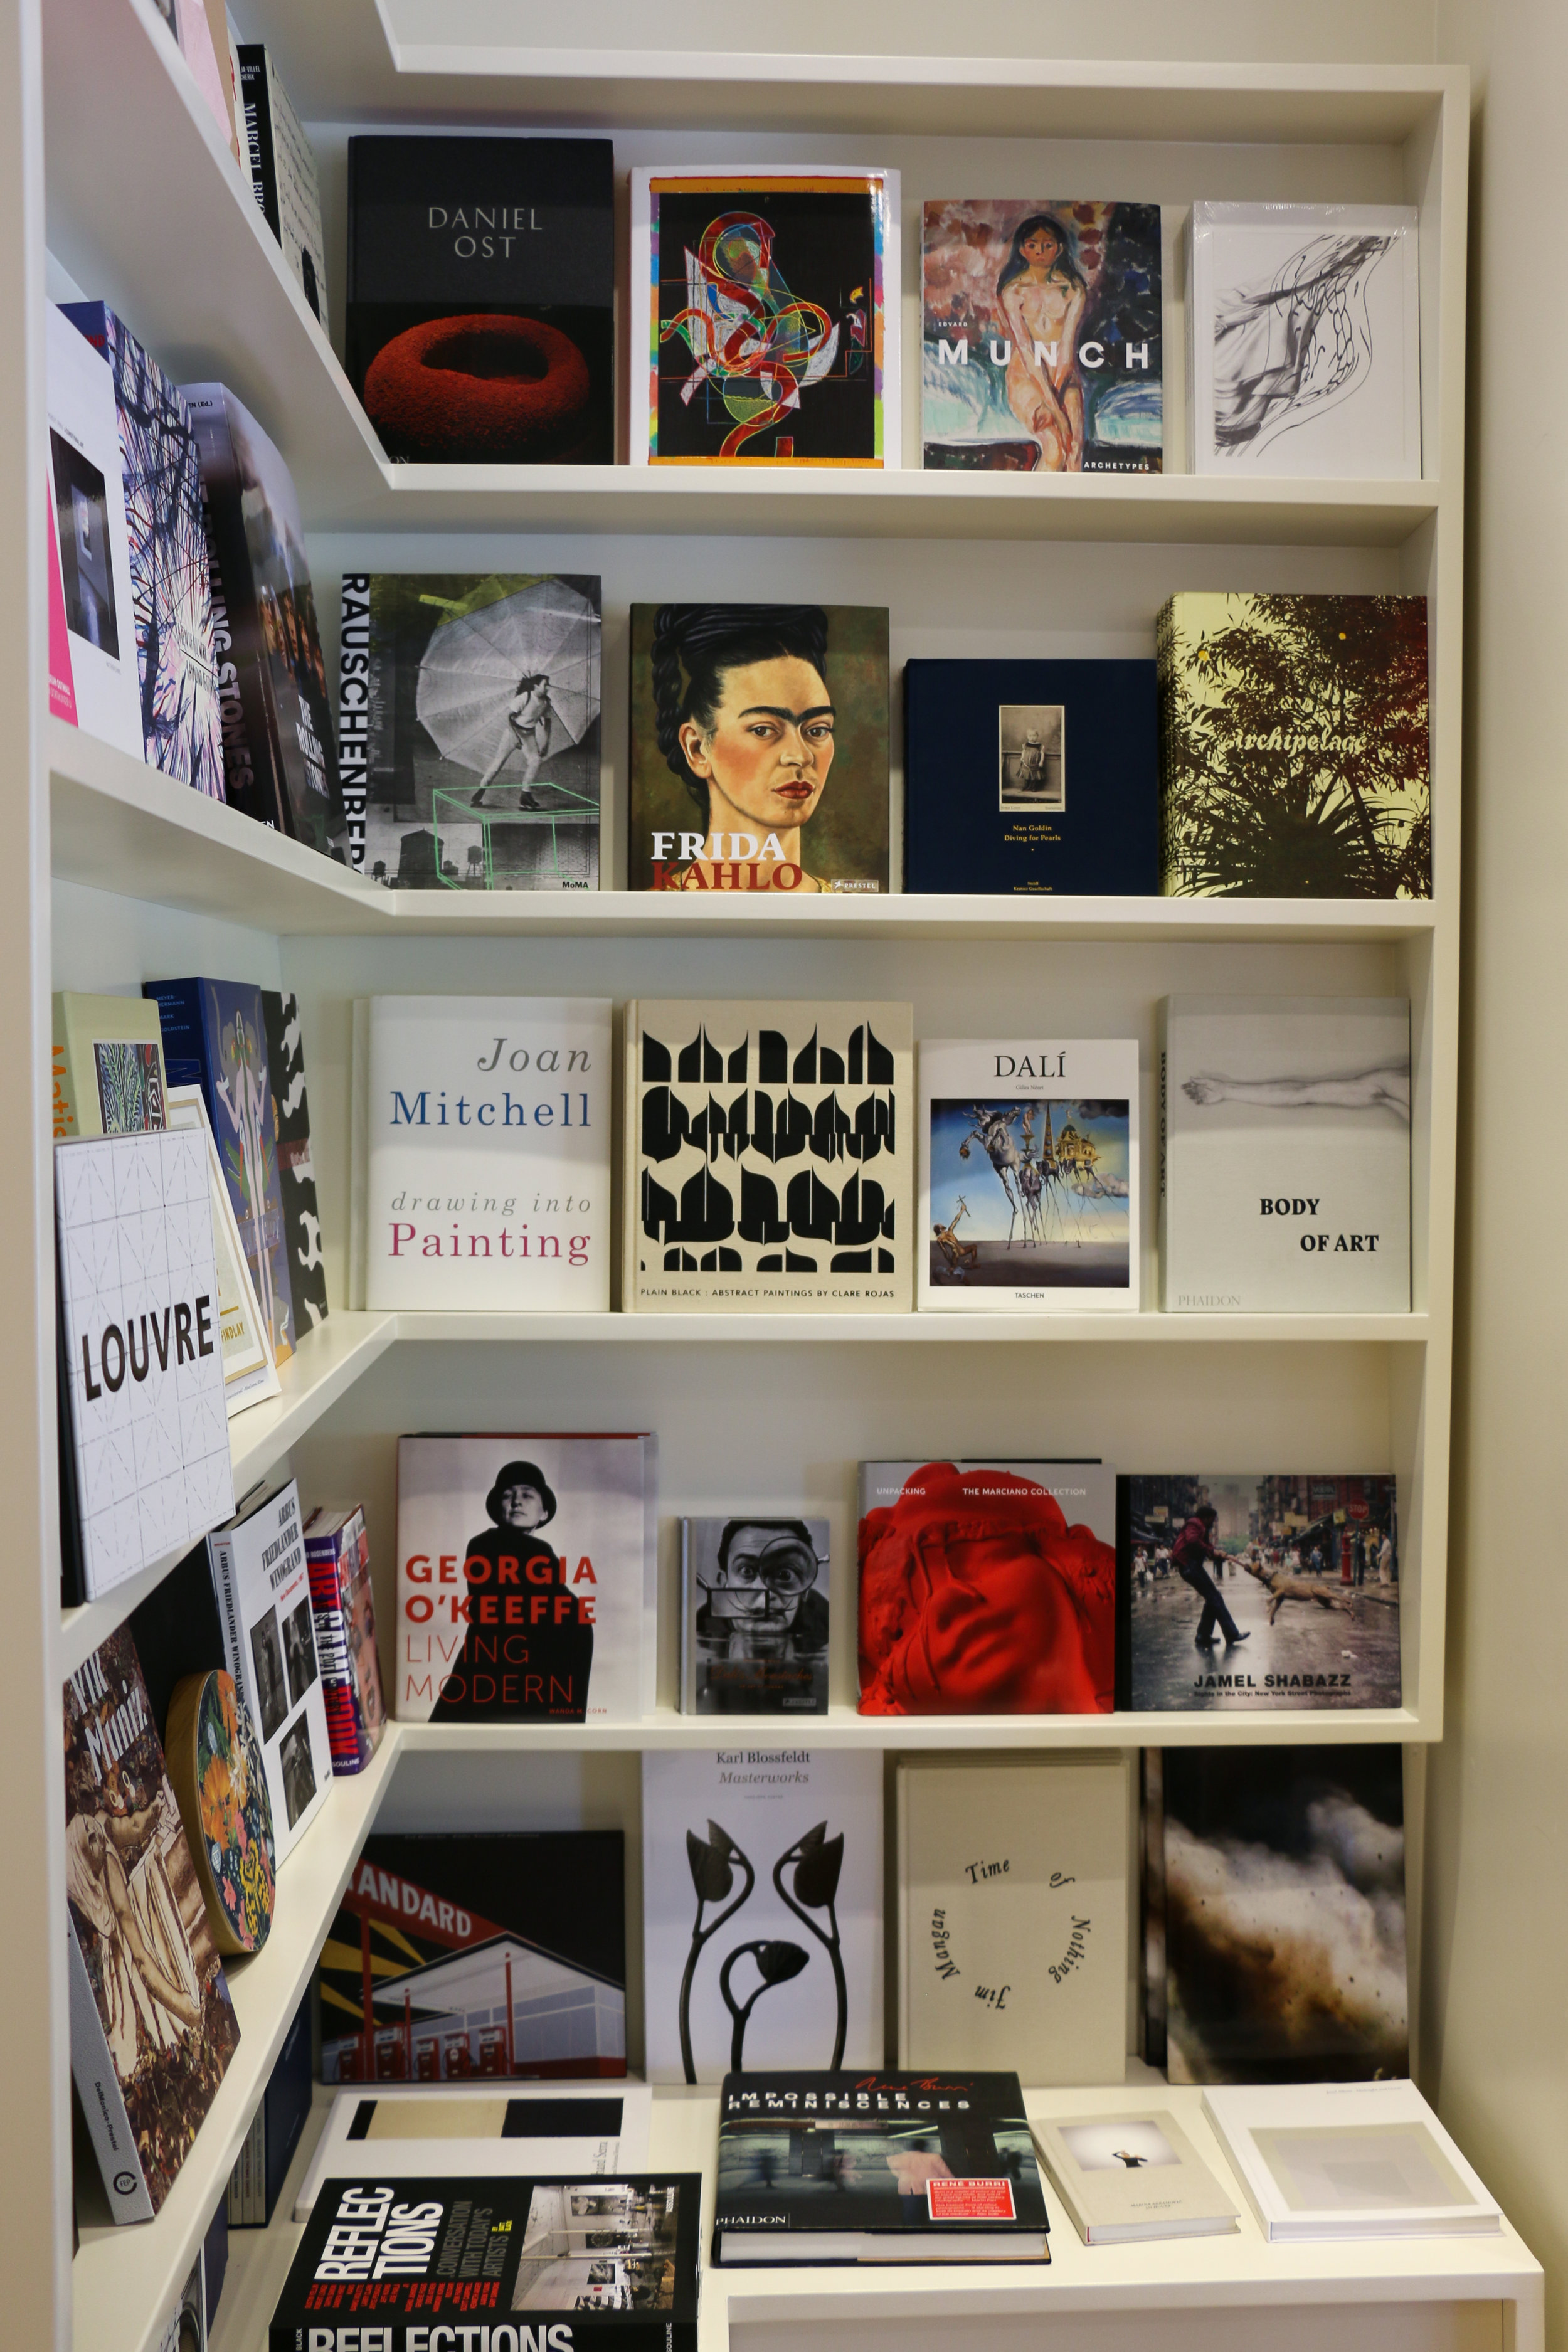 soco-gallery-charlotte-nc-book-selection